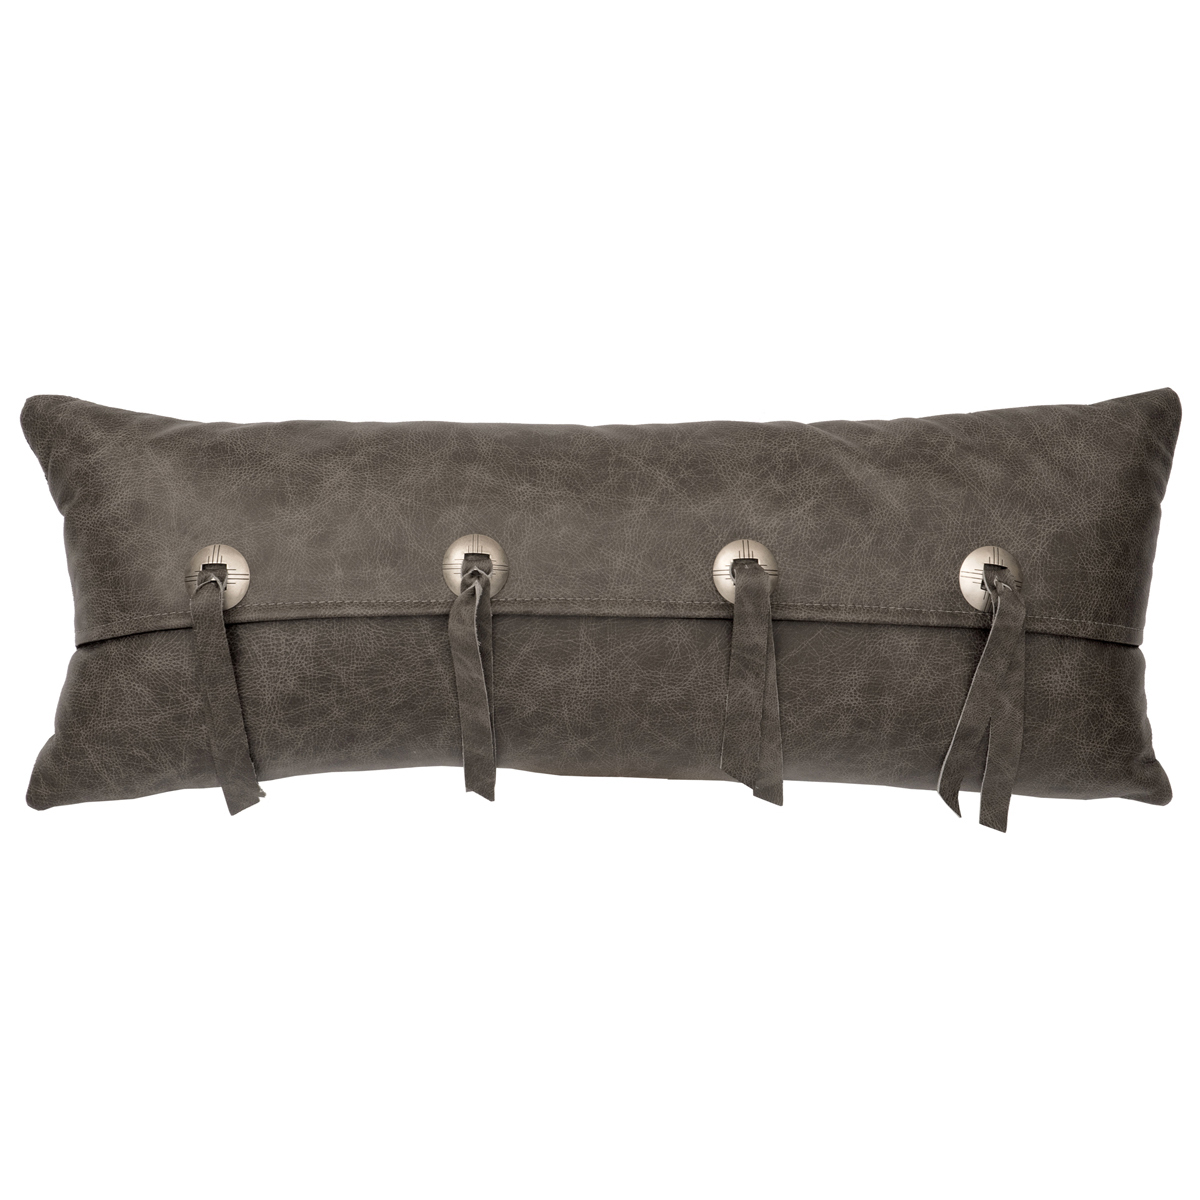 Gray Leather & Conchos Leather Pillow - Leather Back